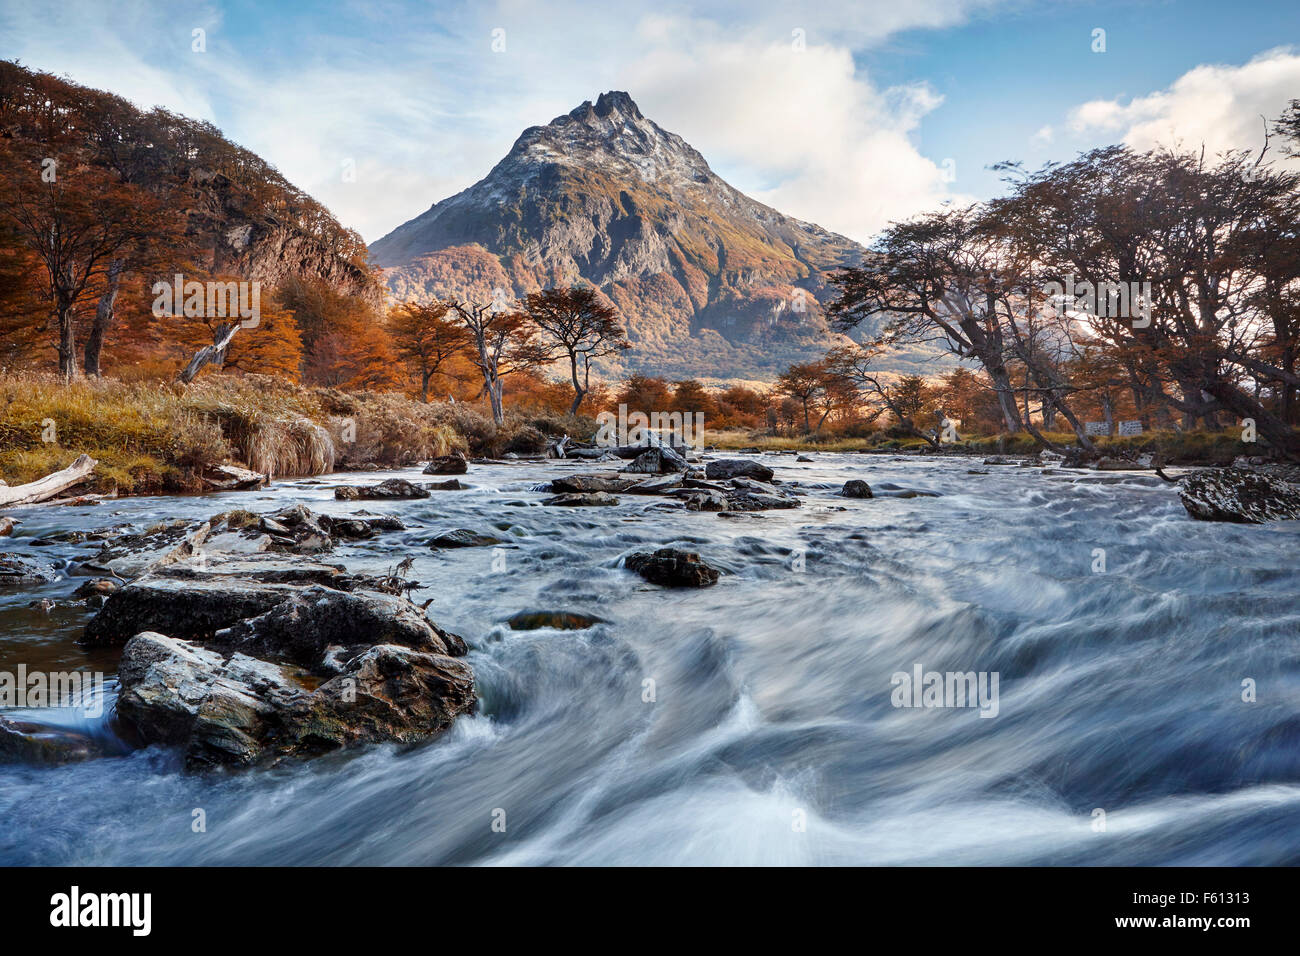 Rifer and mountain, Rio Olivia, Monte Olivia, Tierra del Fuego National Park, Argentina - Stock Image